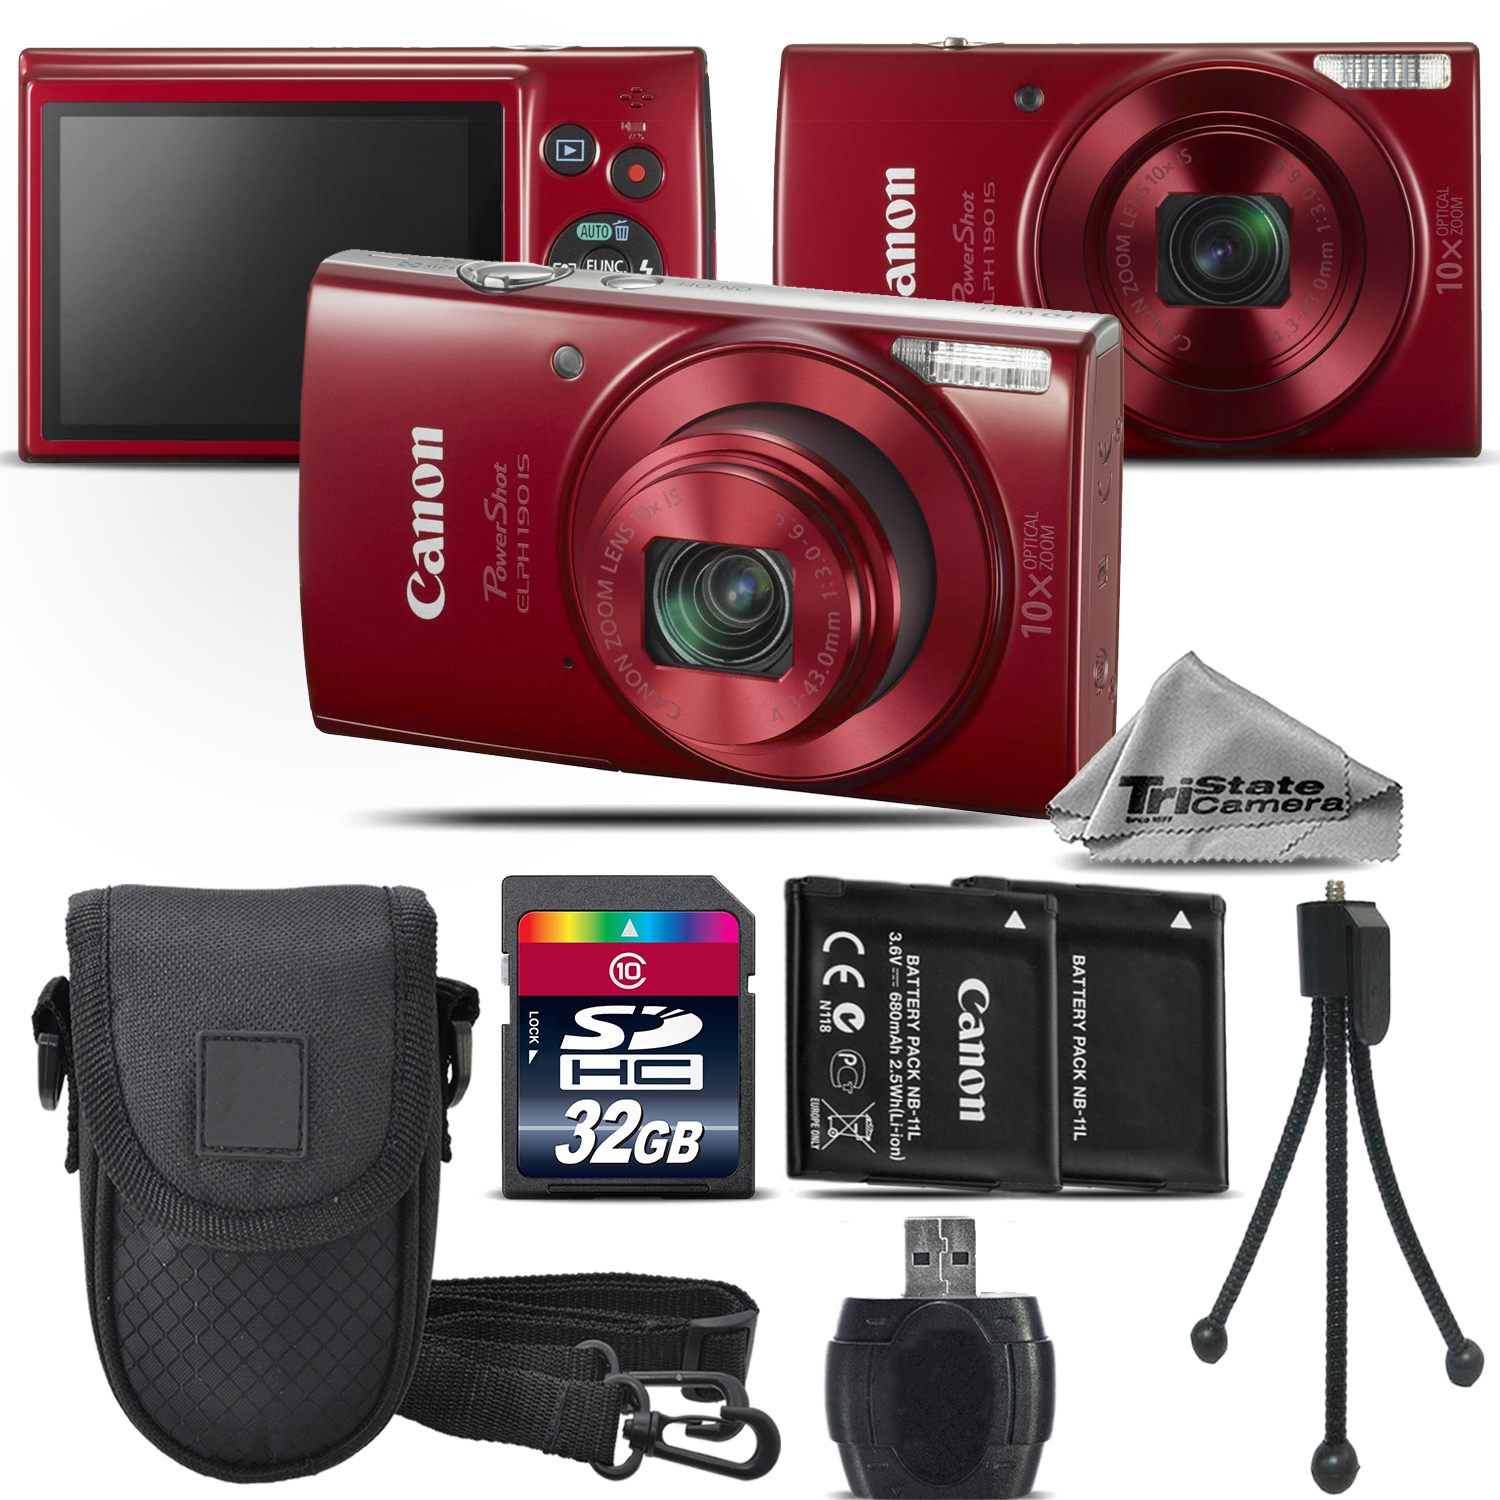 Canon PowerShot ELPH 190 Digital Camera Red 1087C001 10X Optical Zoom - 32GB Kit